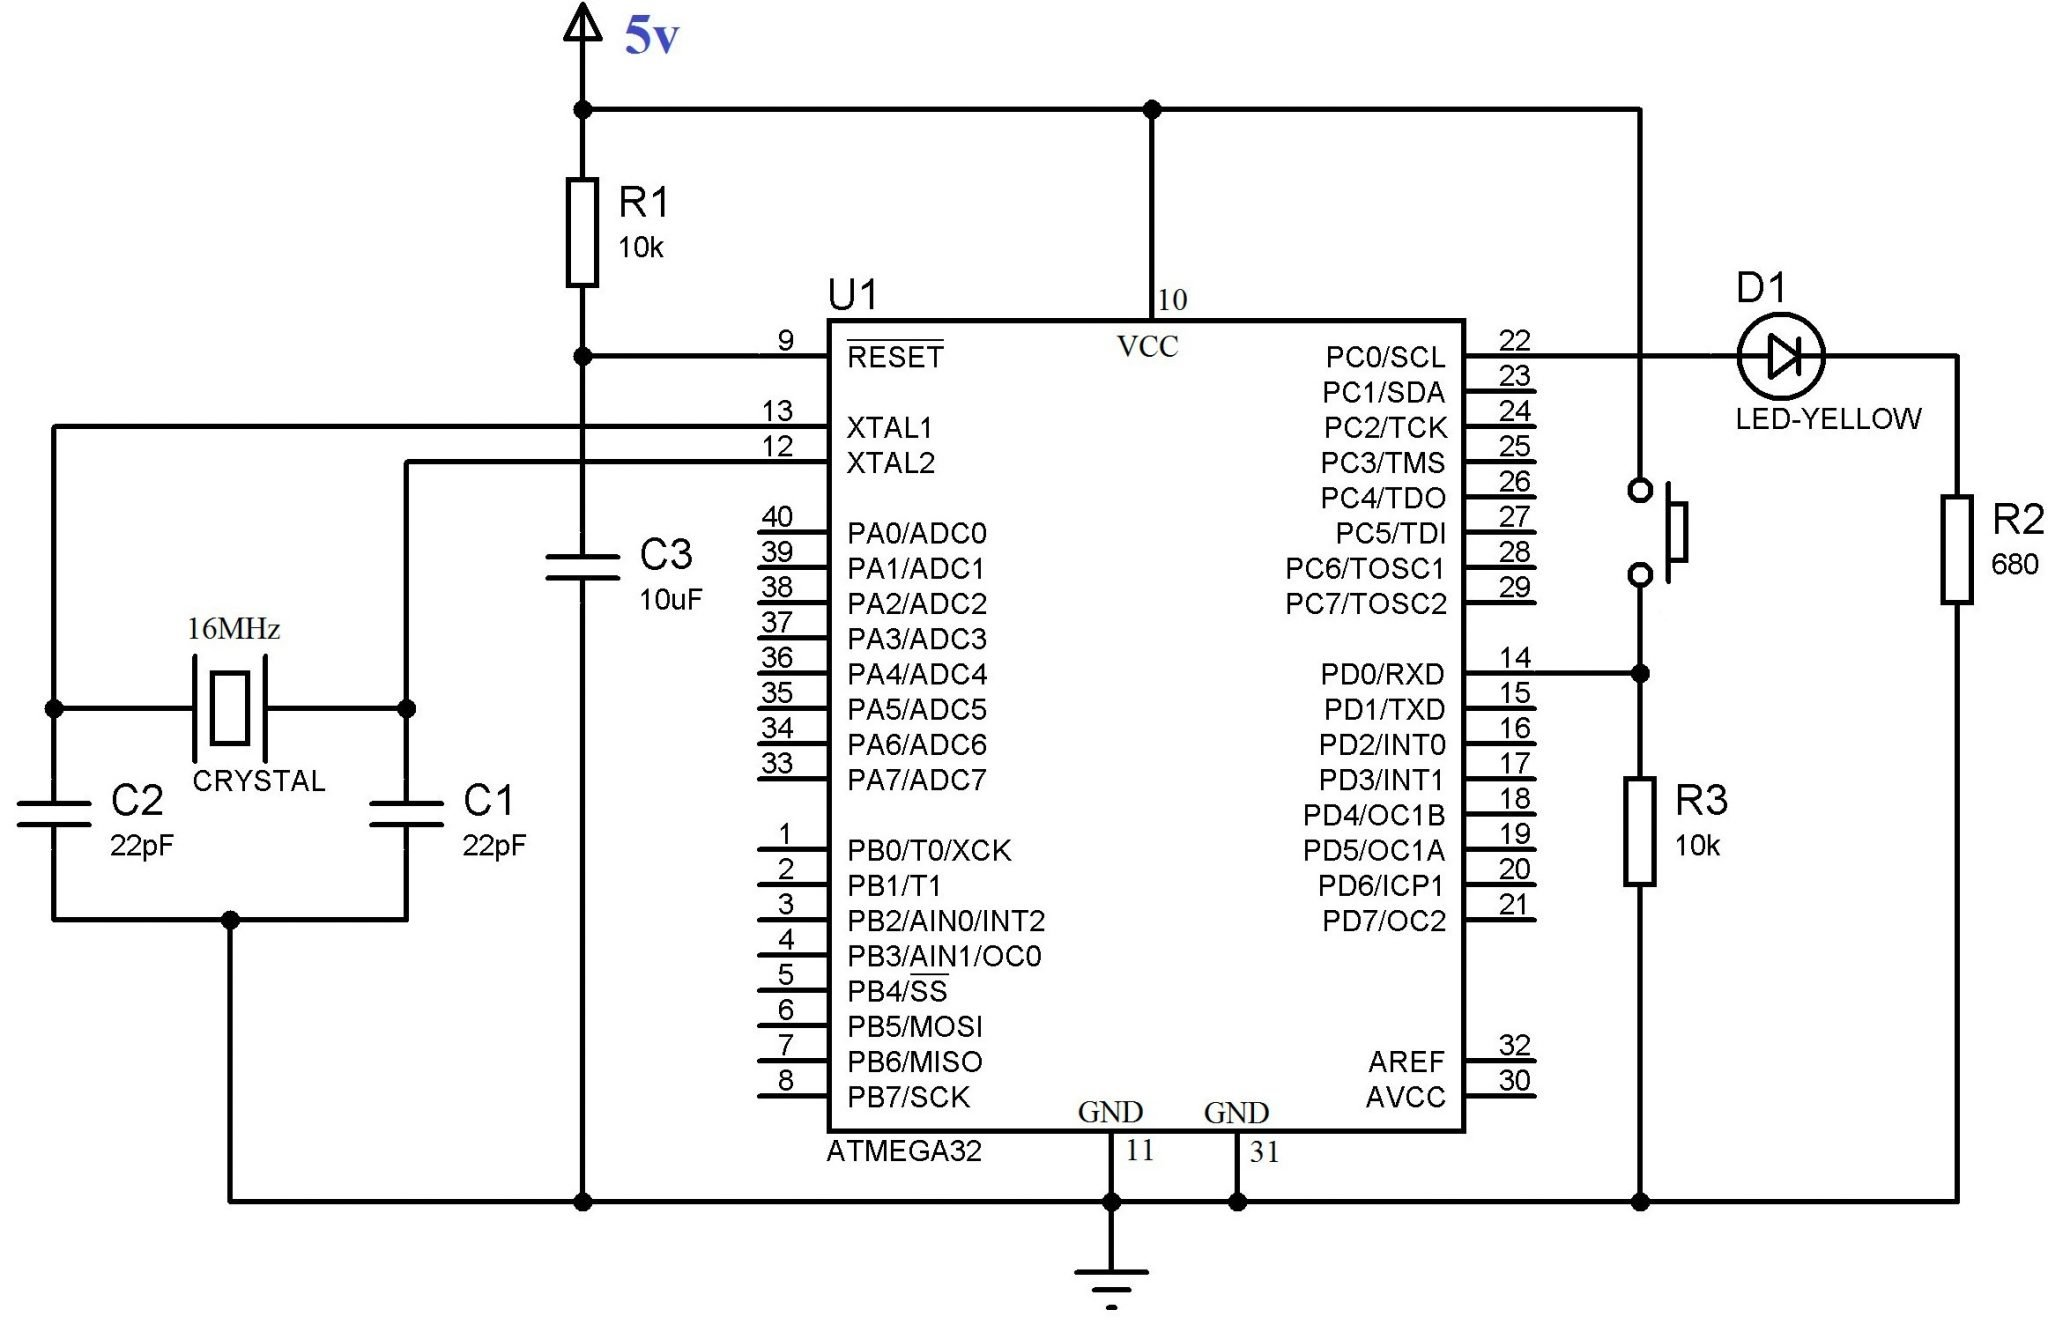 Using Push Button Switch With Atmega32 Microcontroller Atmel Studio Debounce Circuit